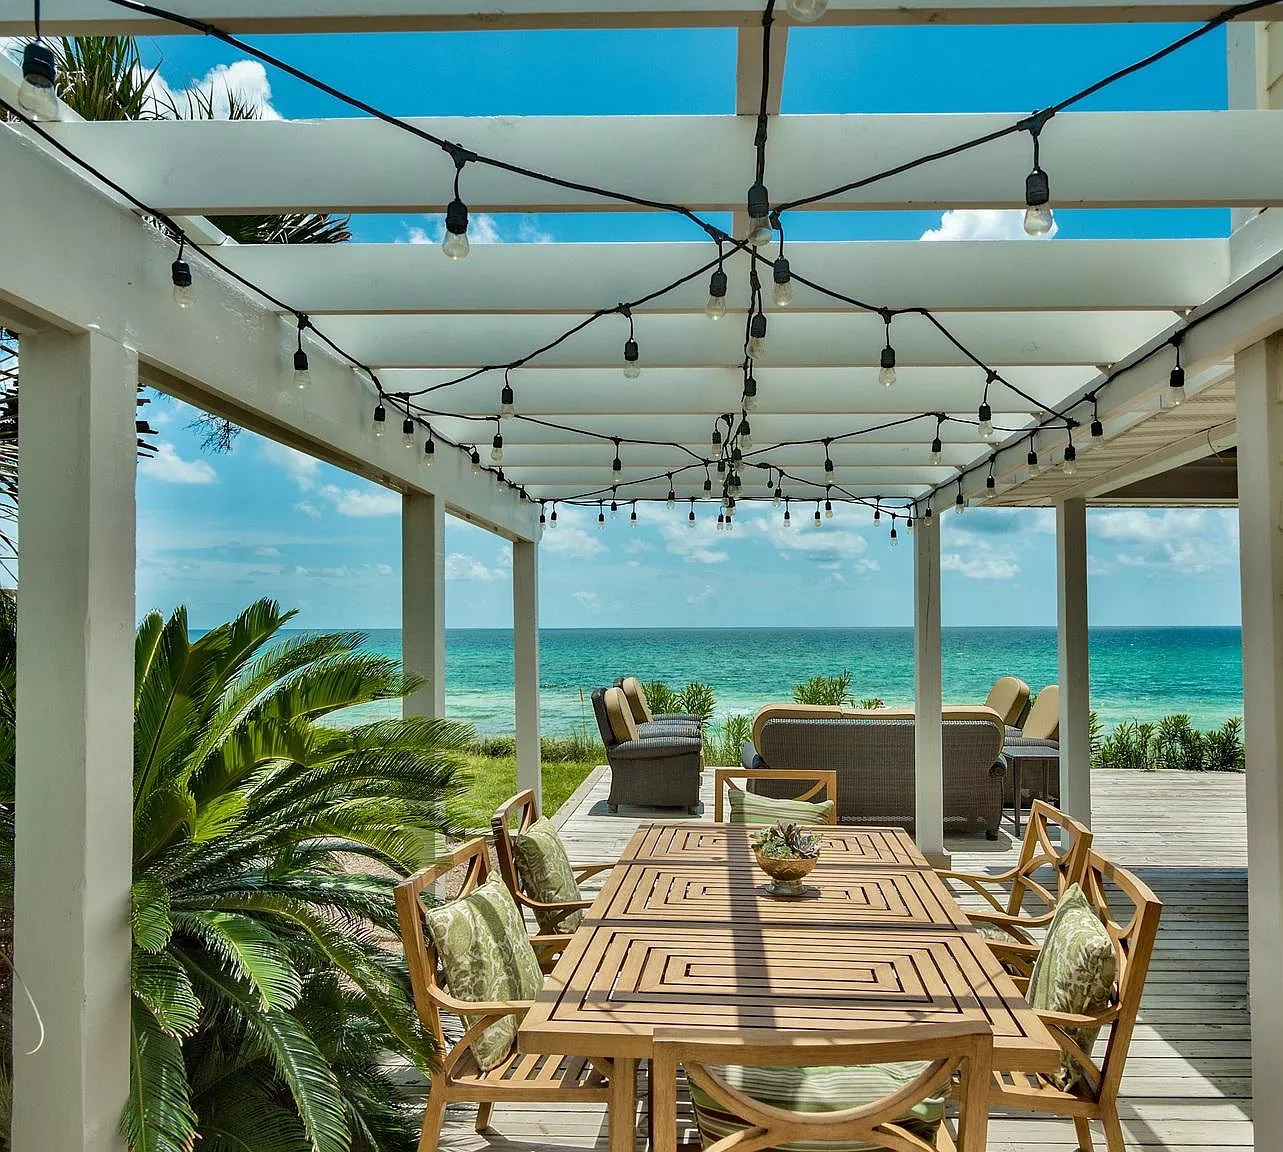 8948 E County Highway 30a, Seacrest, FL 32461 - $5,995,000 home for sale, house images, photos and pics gallery